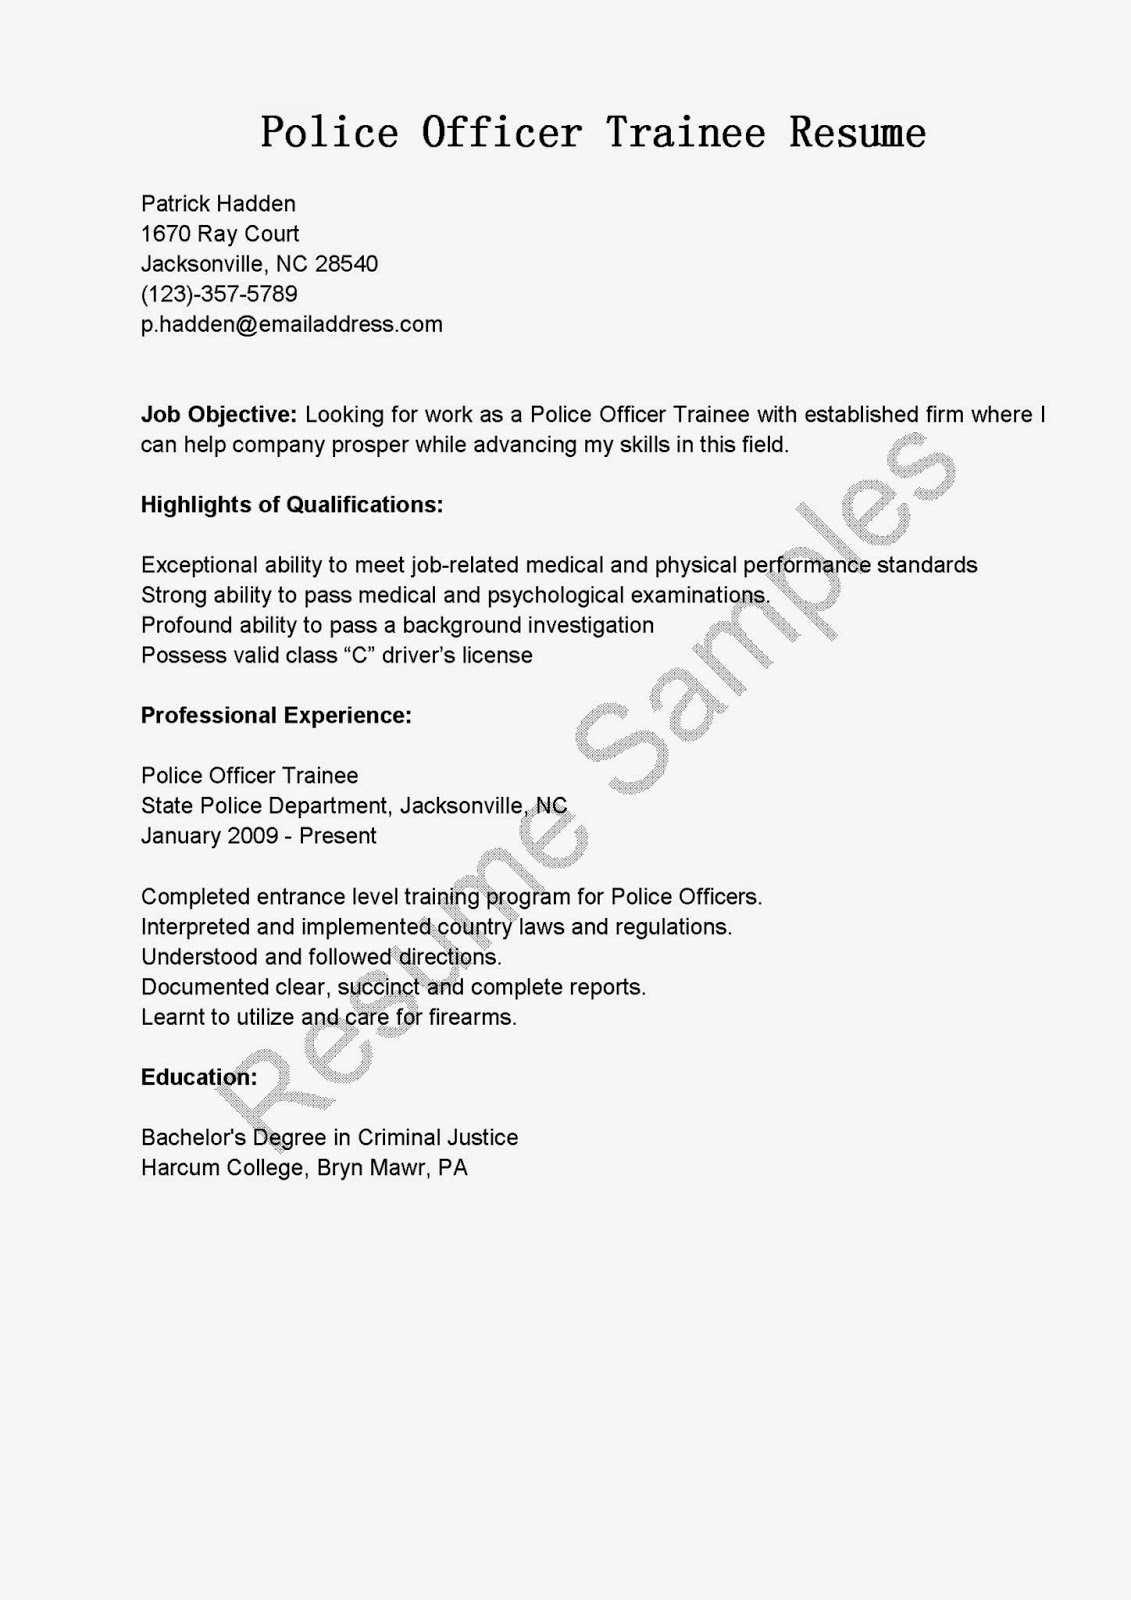 Sample Cover Letter for a Recent College Graduate     design com   Professional Resume Template Services